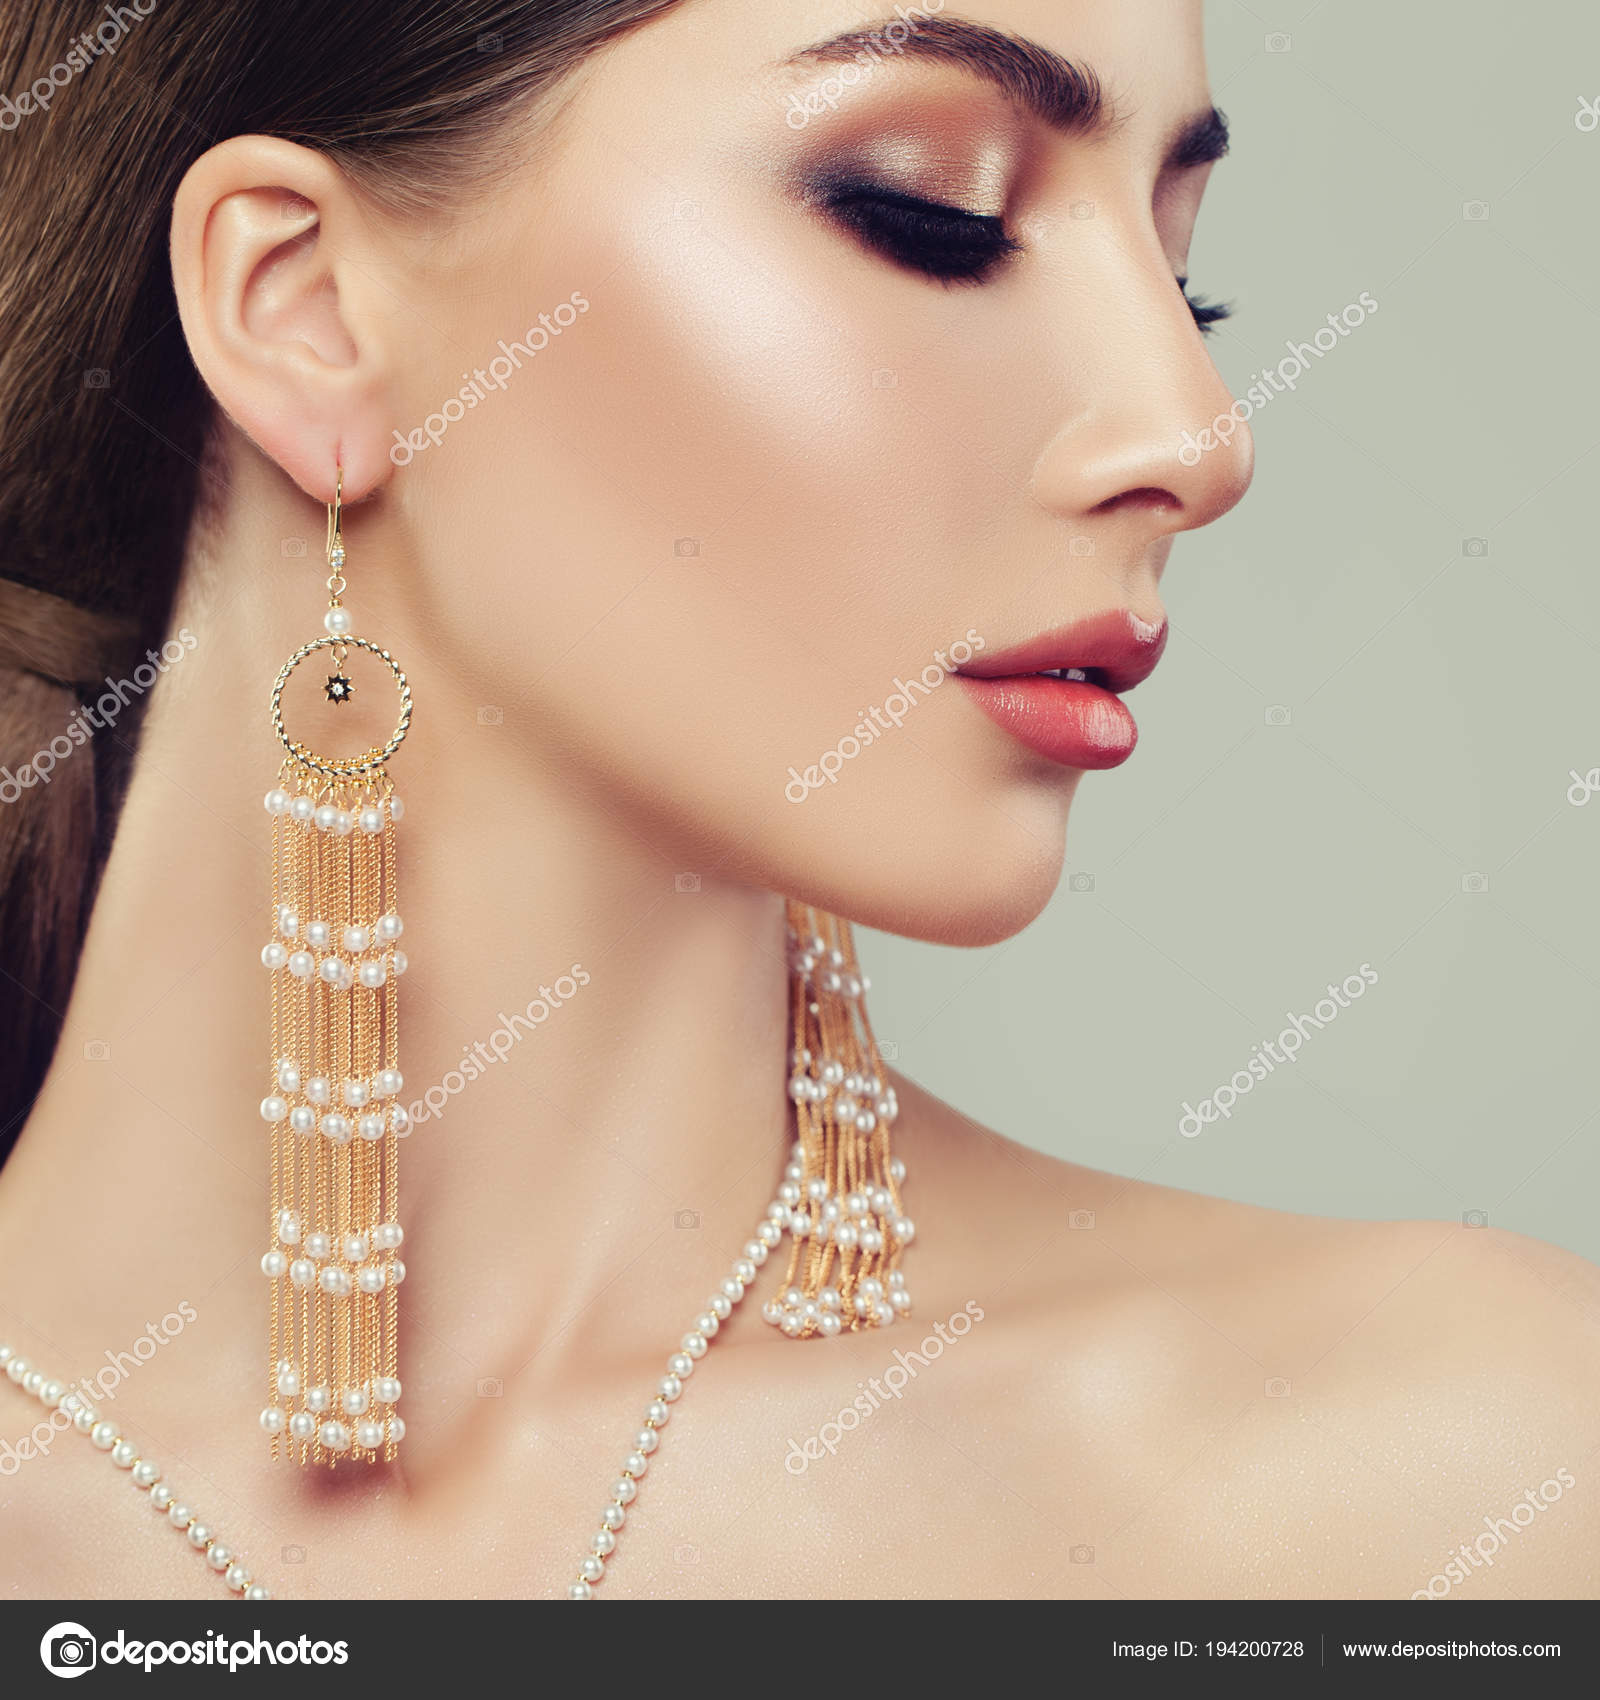 Attractive Woman With Makeup And Gold